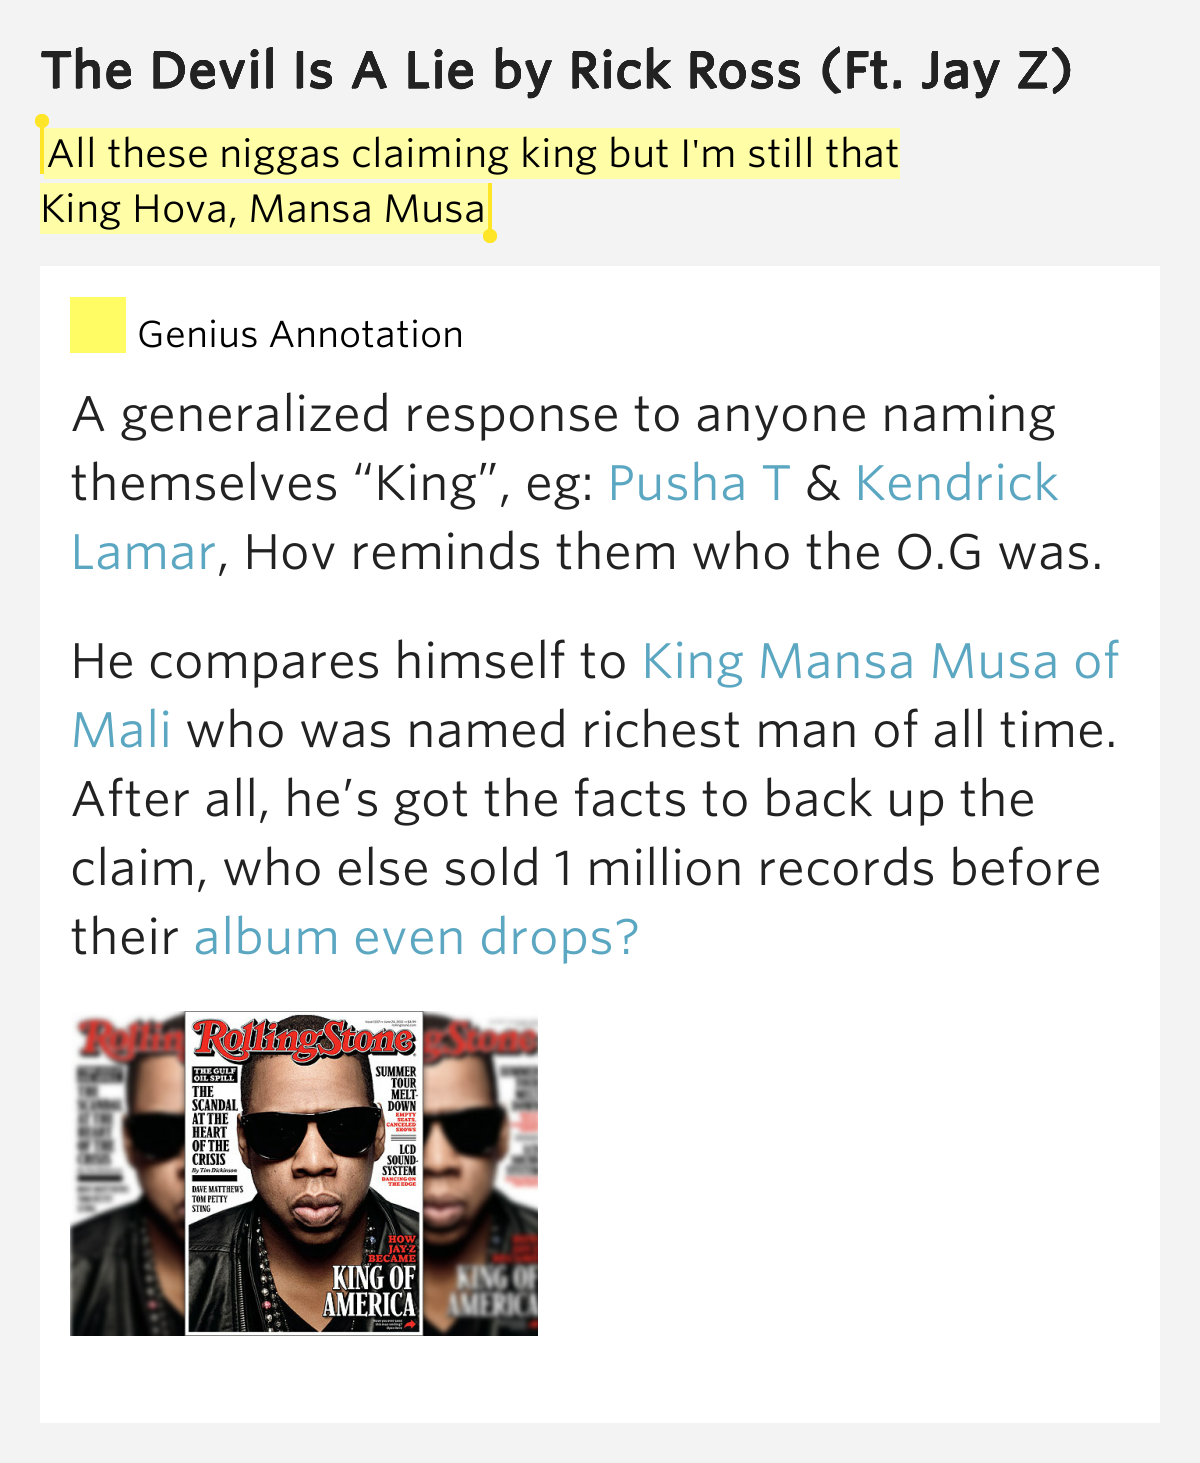 Lucifer Jay Z Lyrics: All These Niggas Claiming King But I'm Still..